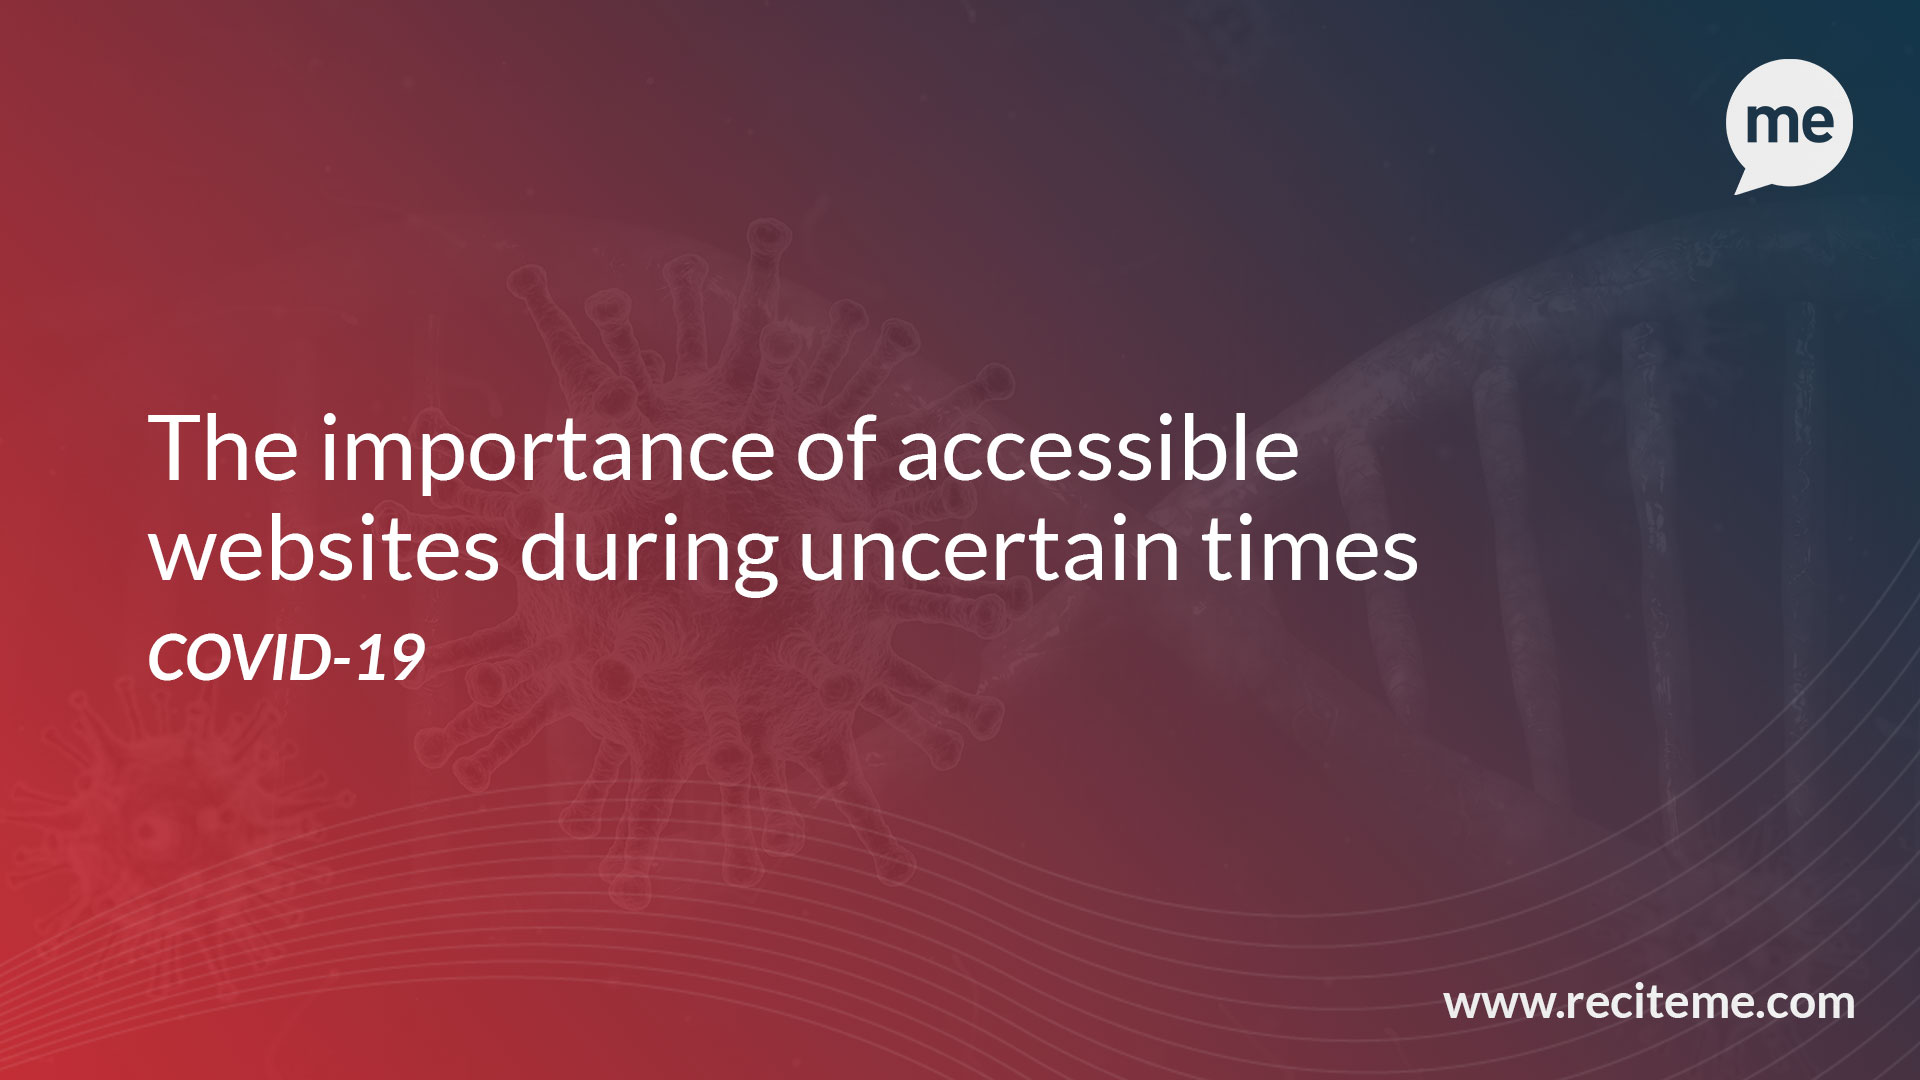 The importance of accessible websites during uncertain times